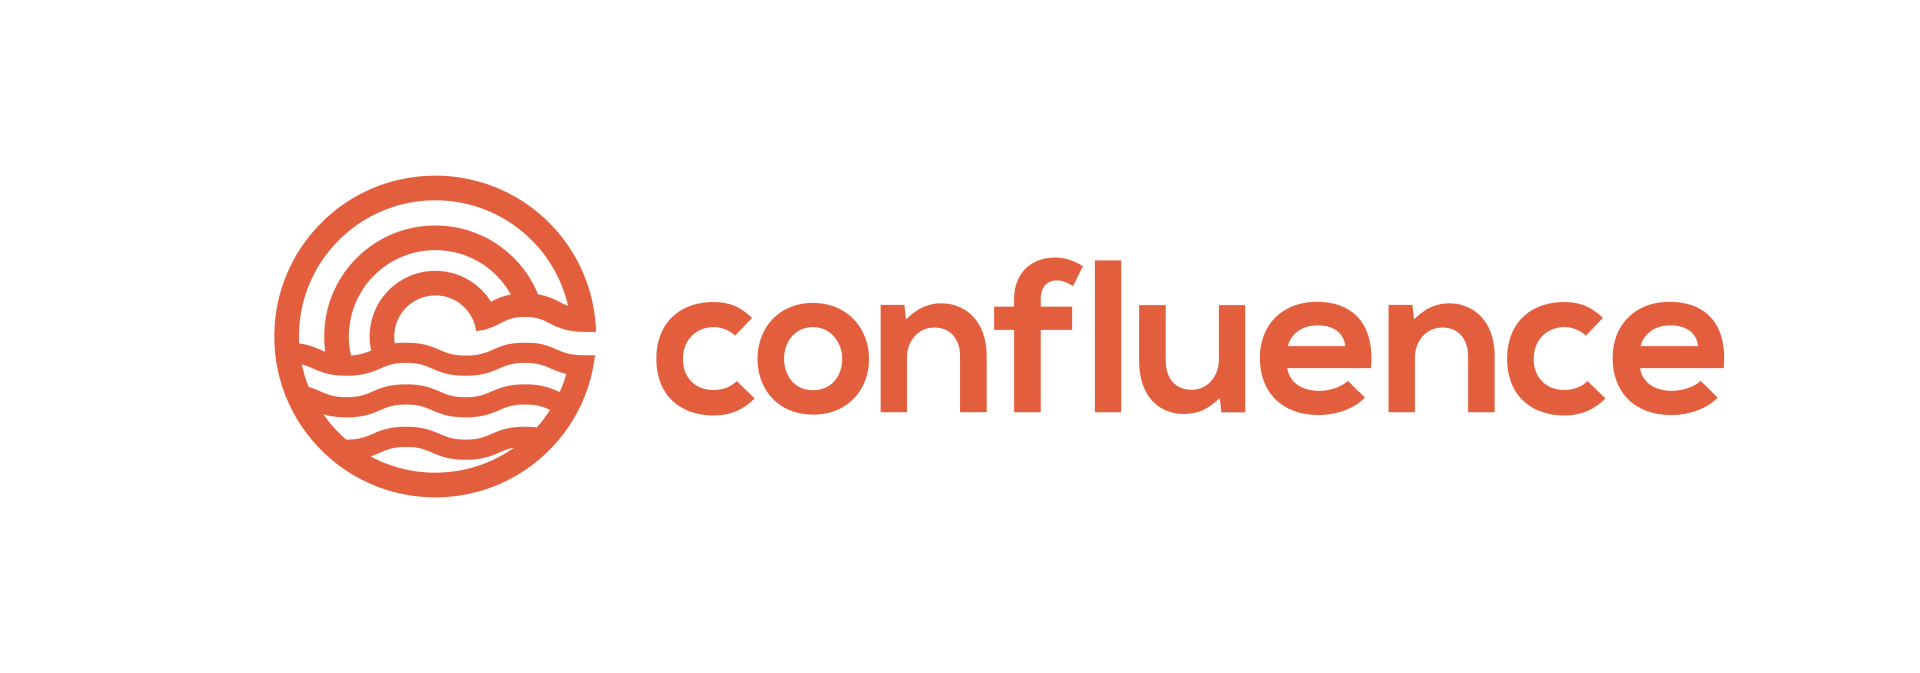 confluence-2017-logolockups-H-(1)-w1920.png